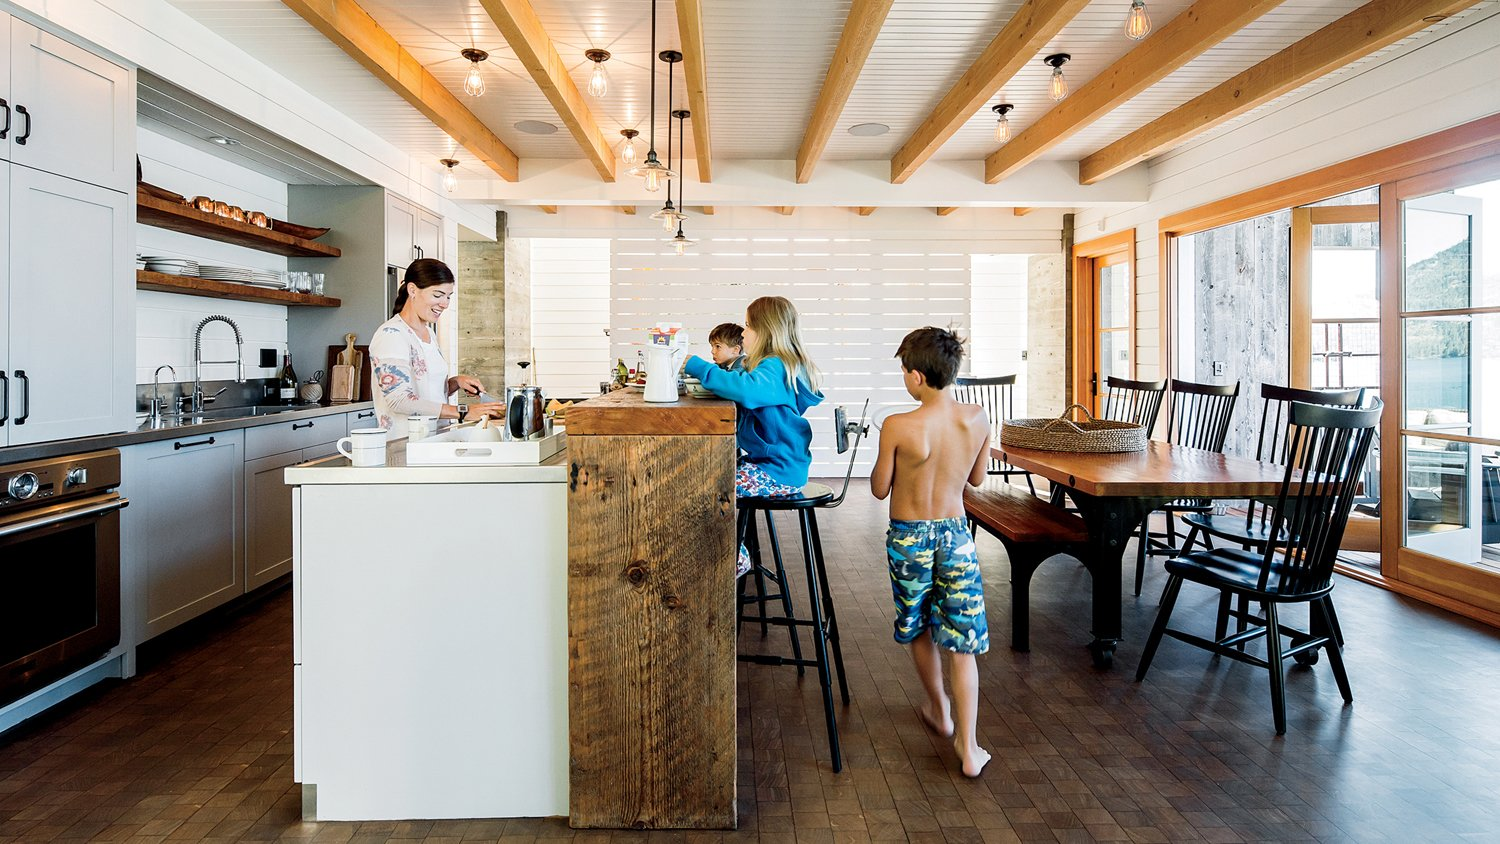 Lake Chelan Tagged: Kitchen, Dark Hardwood Floor, Engineered Quartz Counter, White Cabinet, Ceiling Lighting, Wall Oven, and Pendant Lighting.  Lake Chelan by Hoedemaker Pfeiffer